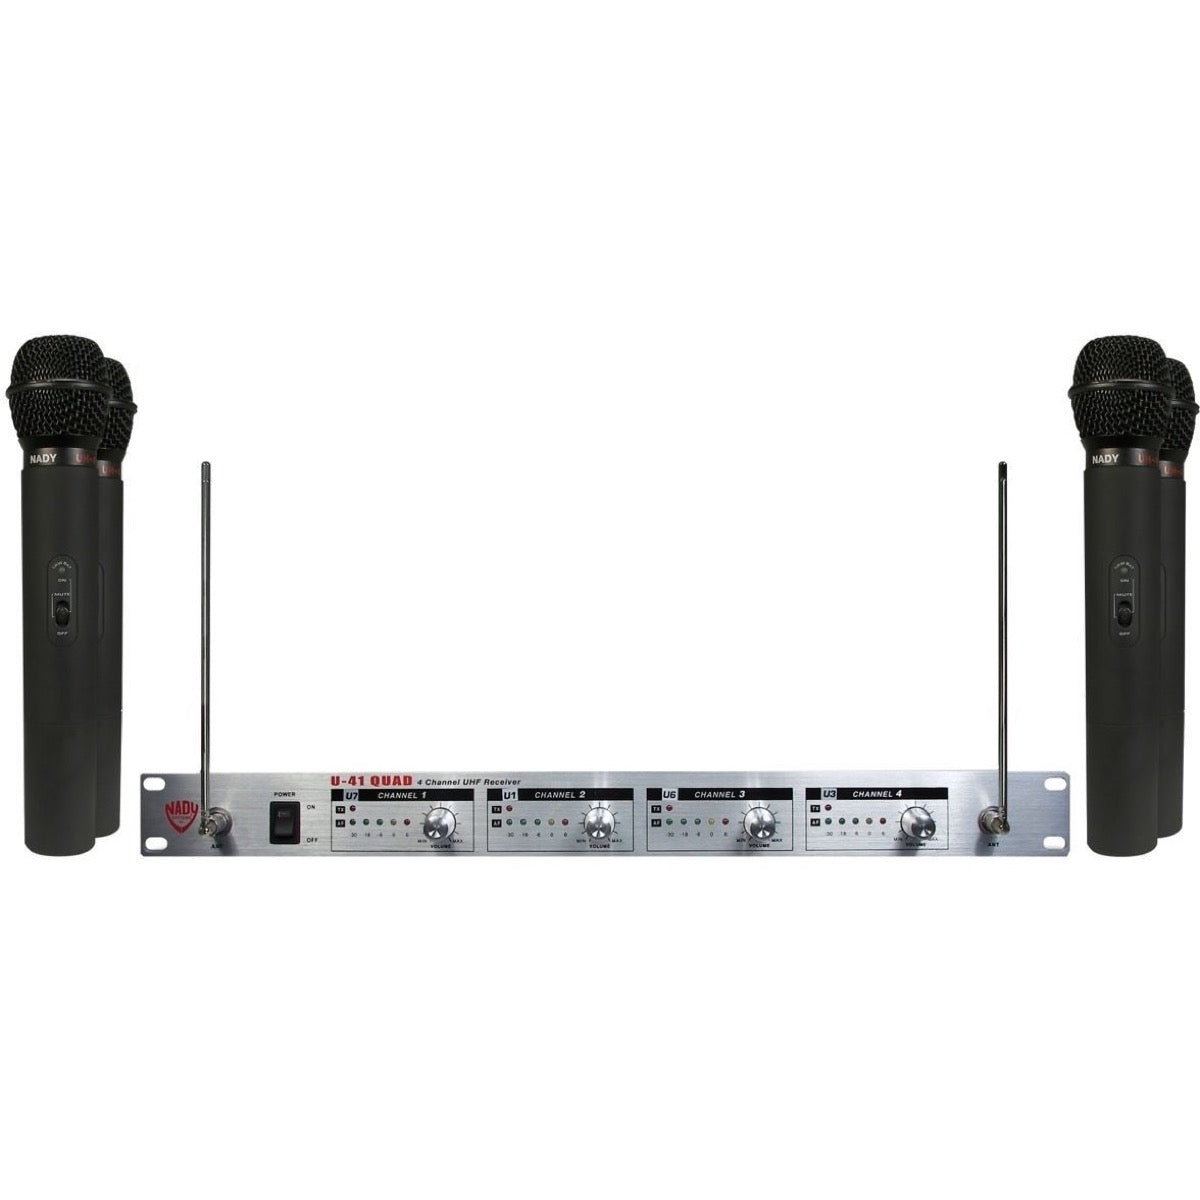 Nady U-41 QUAD HT UHF Handheld Wireless Microphone System